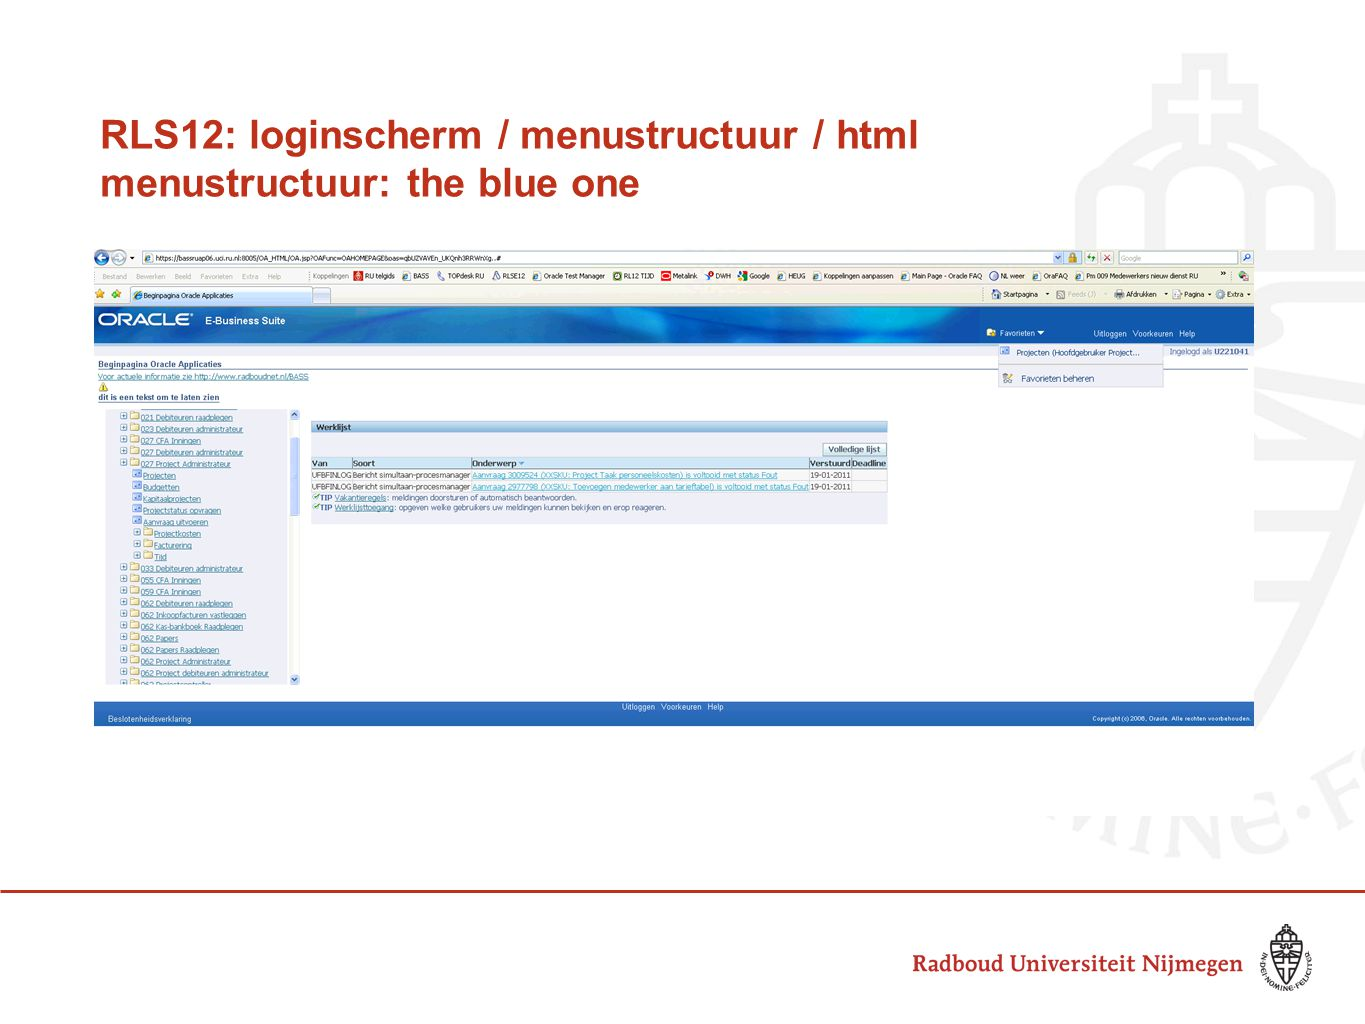 RLS12: loginscherm / menustructuur / html menustructuur: the blue one